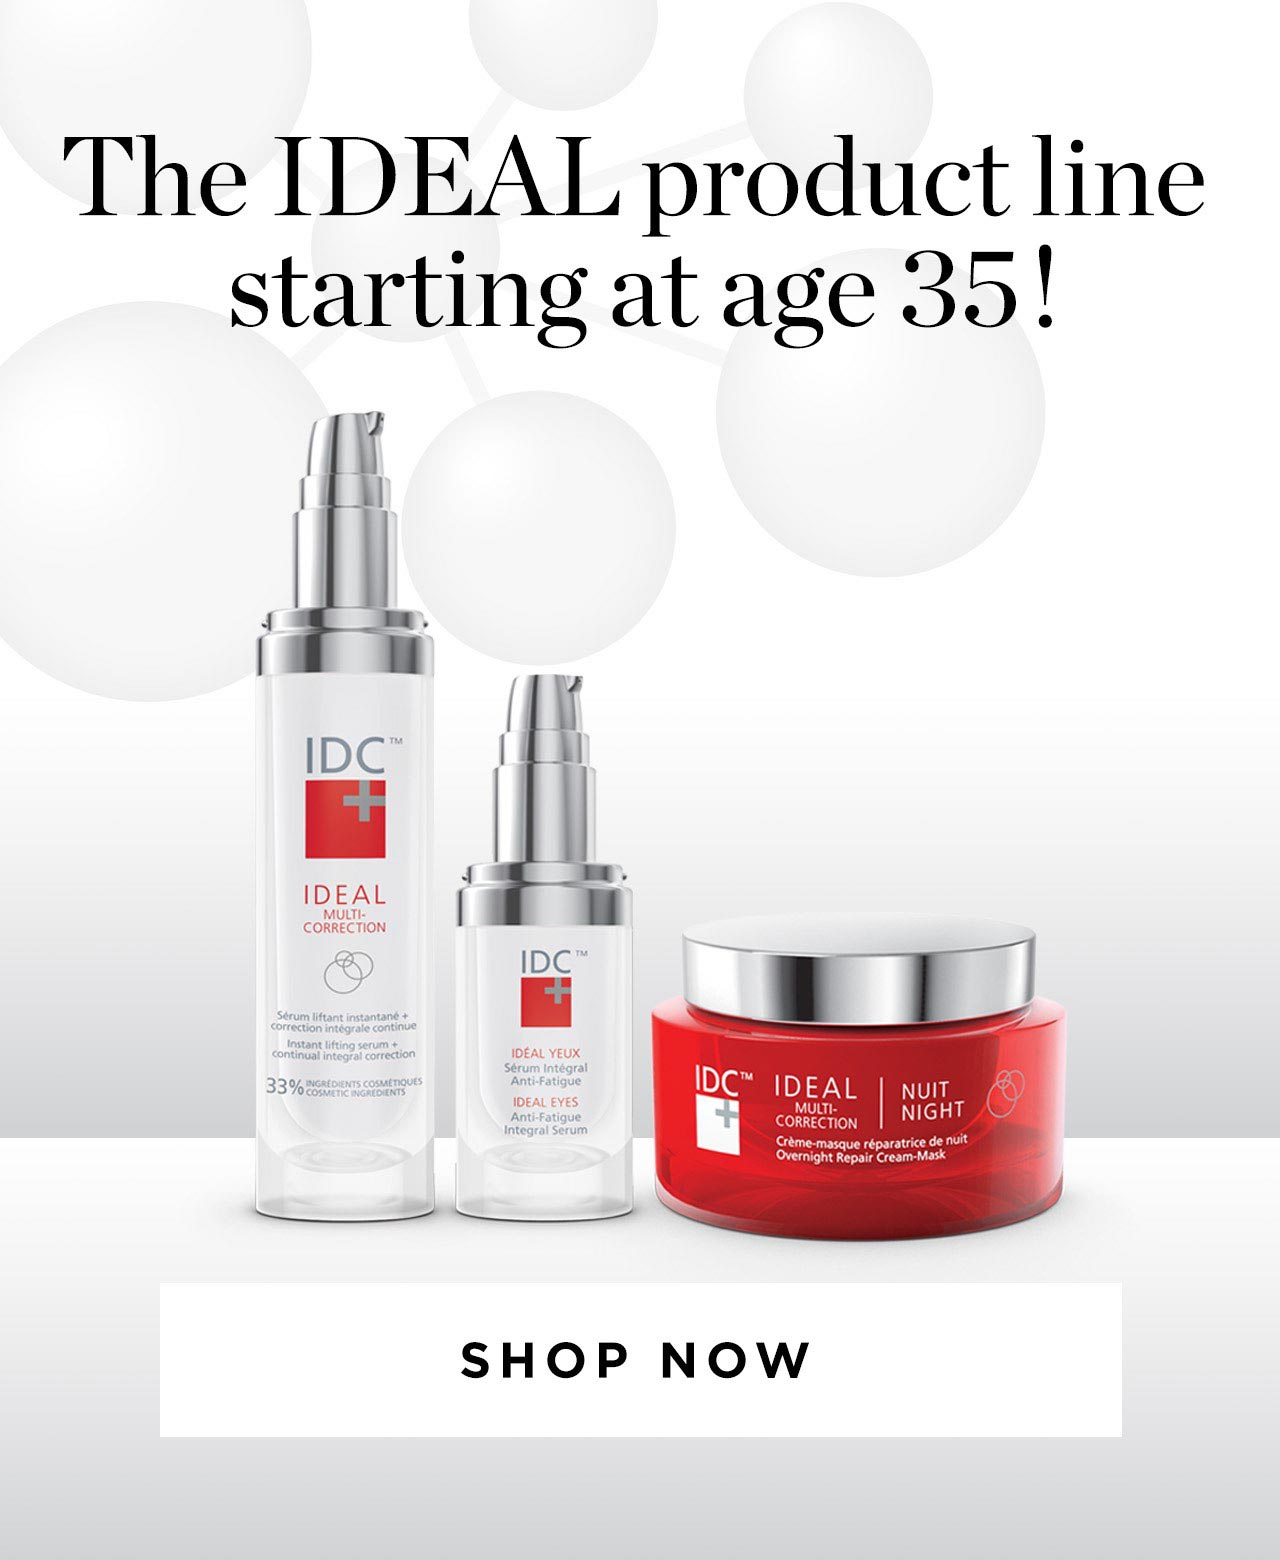 The IDEAL product line starting at age 35!